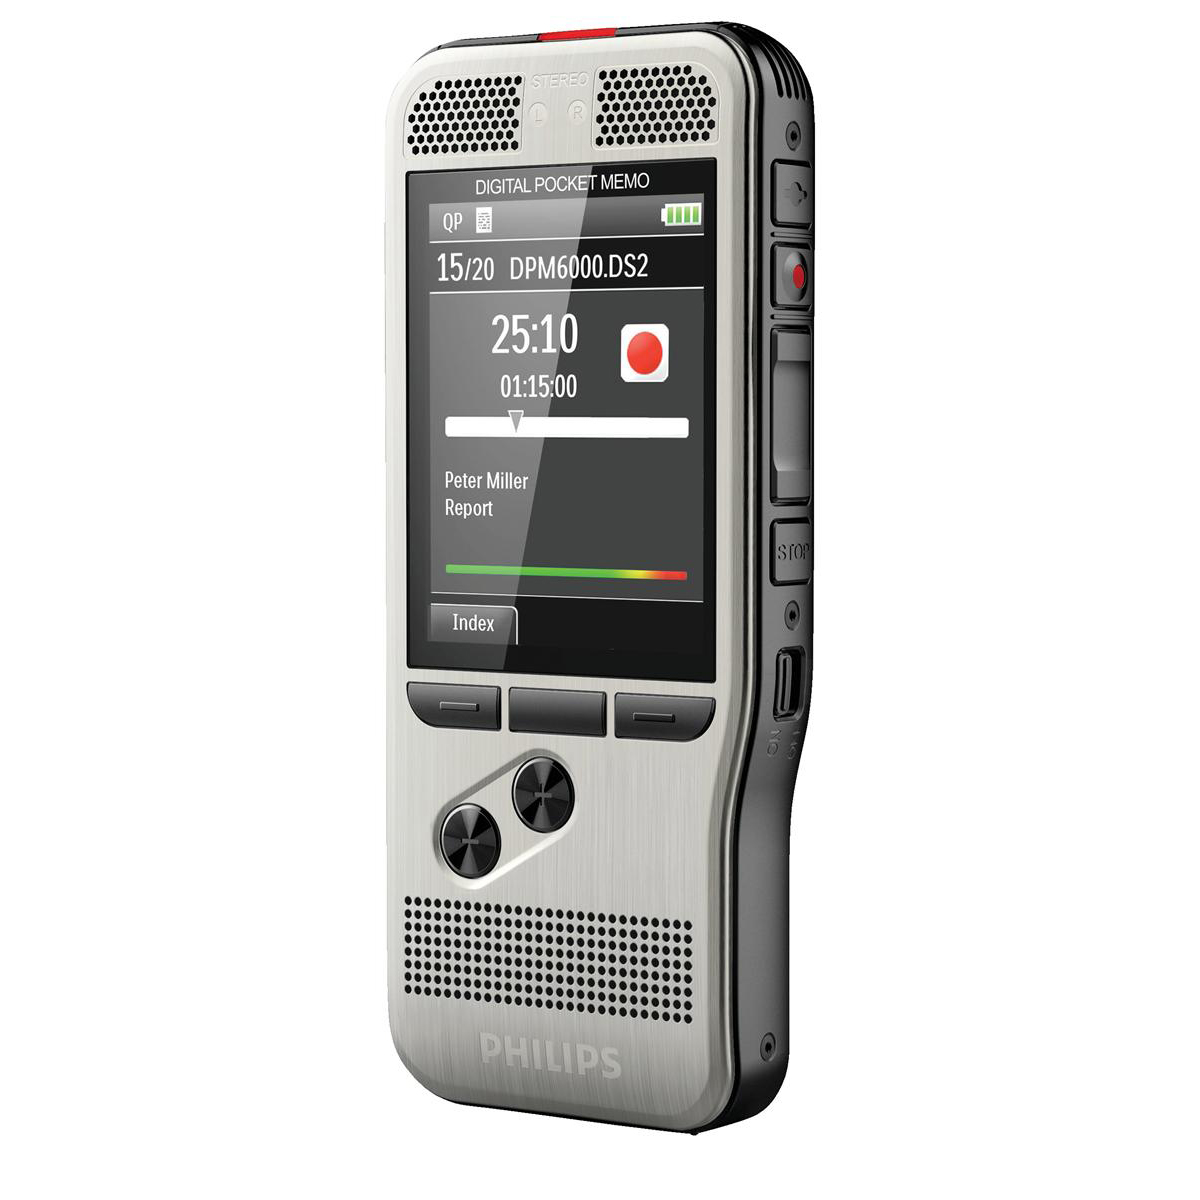 Image for Philips Digital Memo Recorder DPM6000